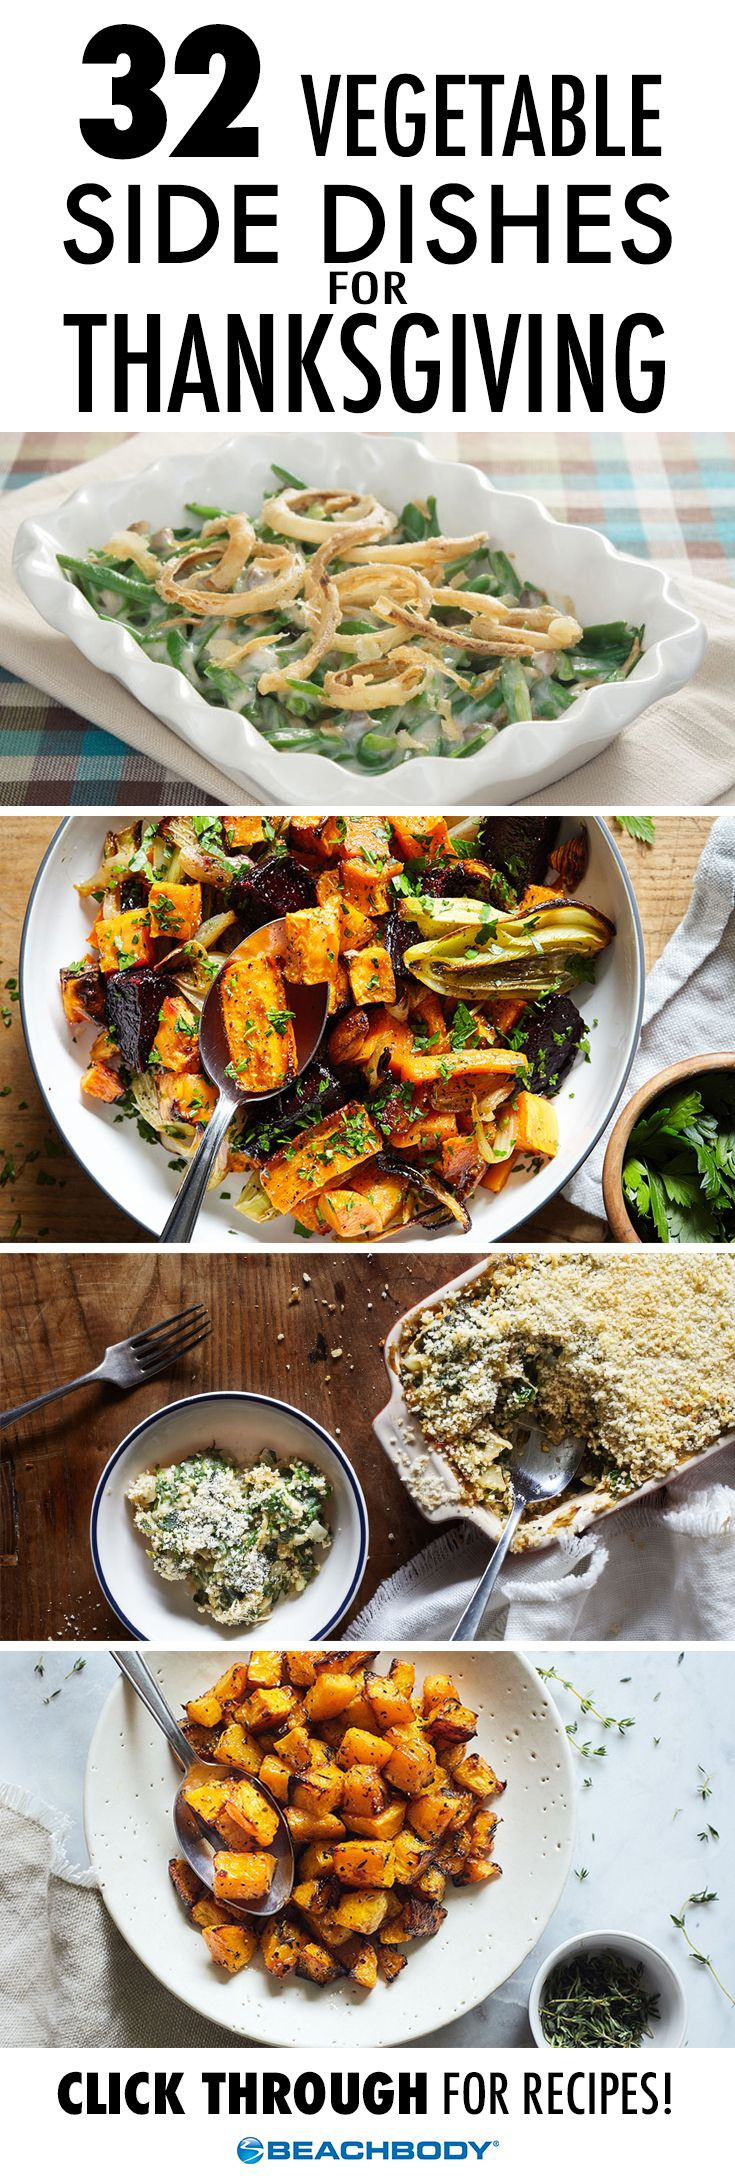 Vegetarian Side Dishes For Thanksgiving  837 best images about Healthy Recipes on Pinterest